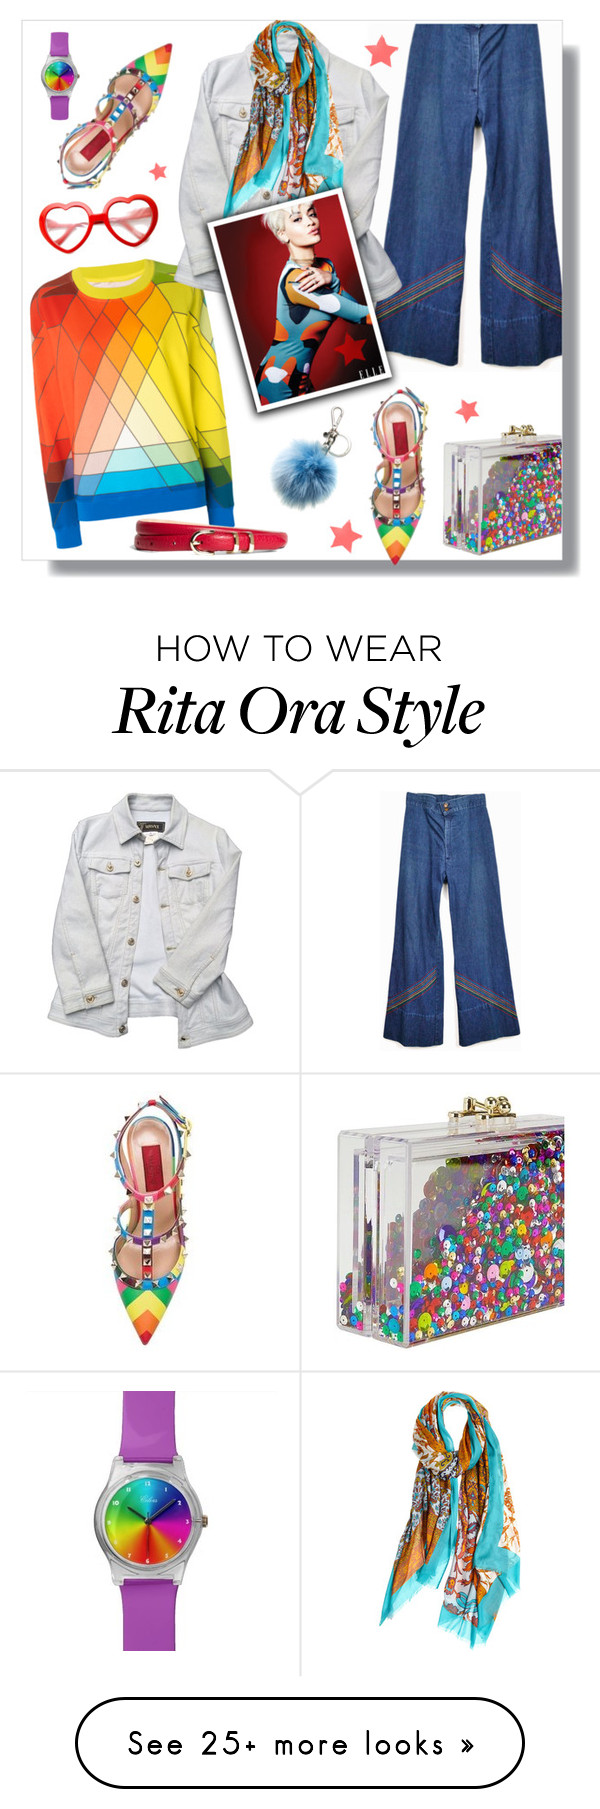 """Rainbow"" by hellodollface on Polyvore featuring Ashlyn'd, Levi's, Versace, Calypso Private Label, Brooks Brothers, Michael Kors, women's clothing, women's fashion, women and female"